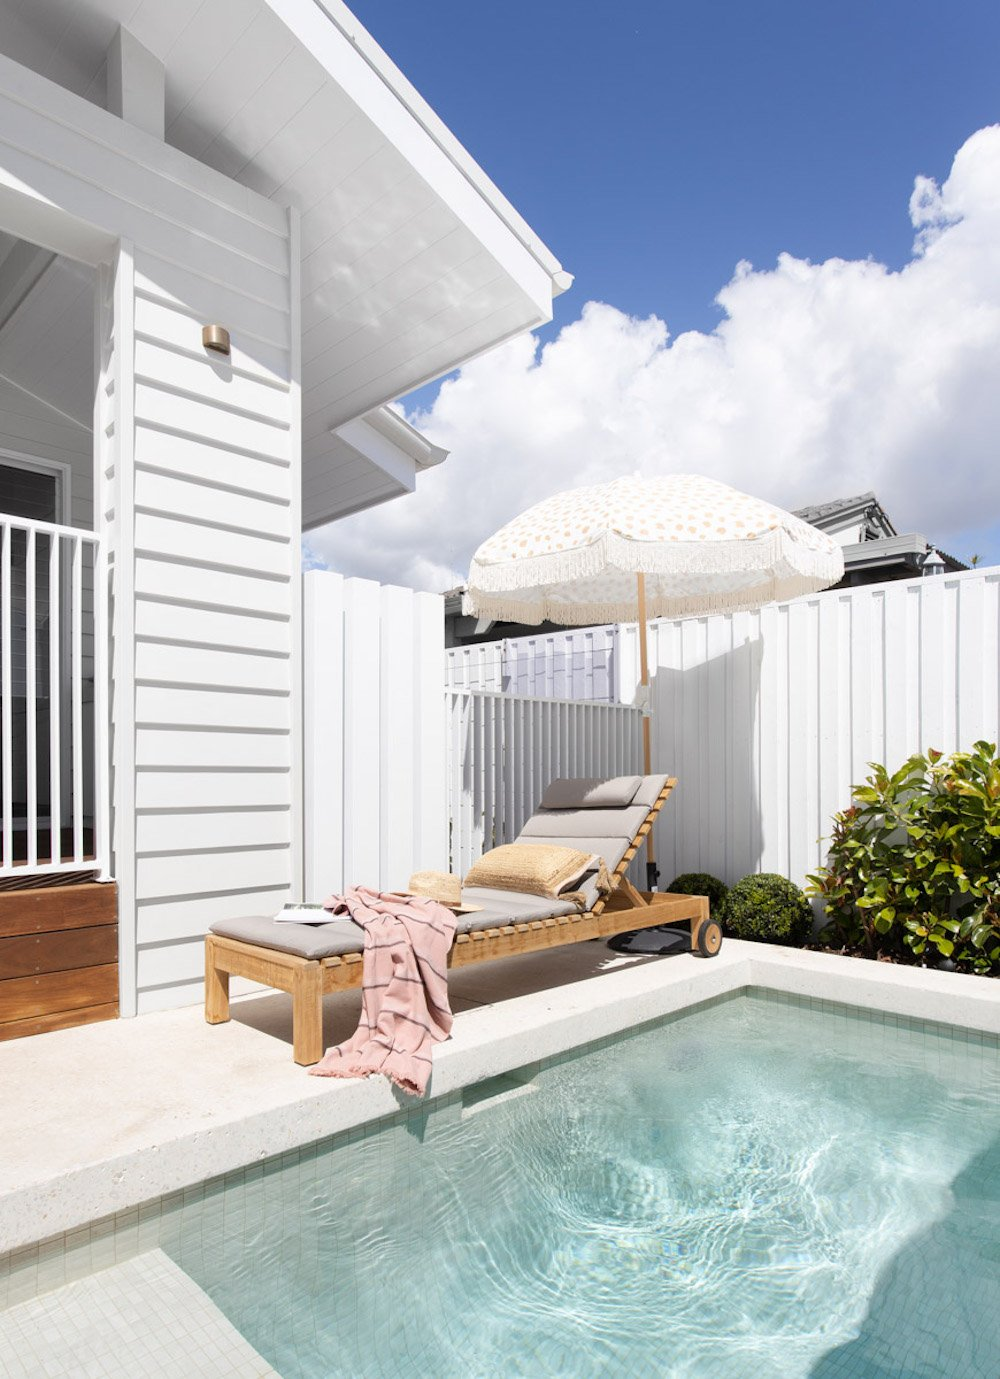 Gold Coast wedding accommodation pool and deck chair in sun